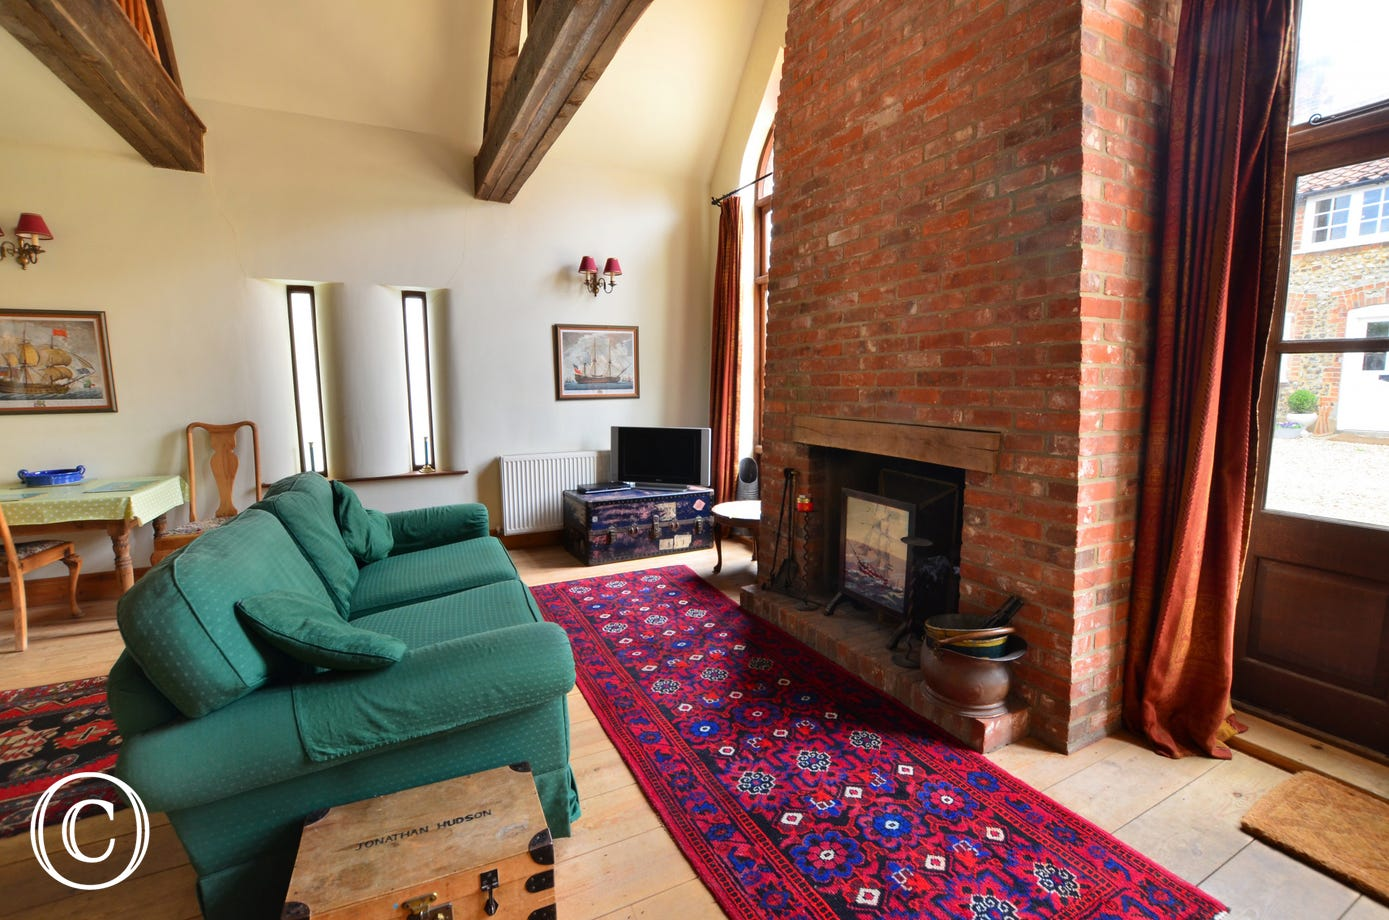 The sitting room has a wooden floor and there is a TV with Freeview and a  DVD player,